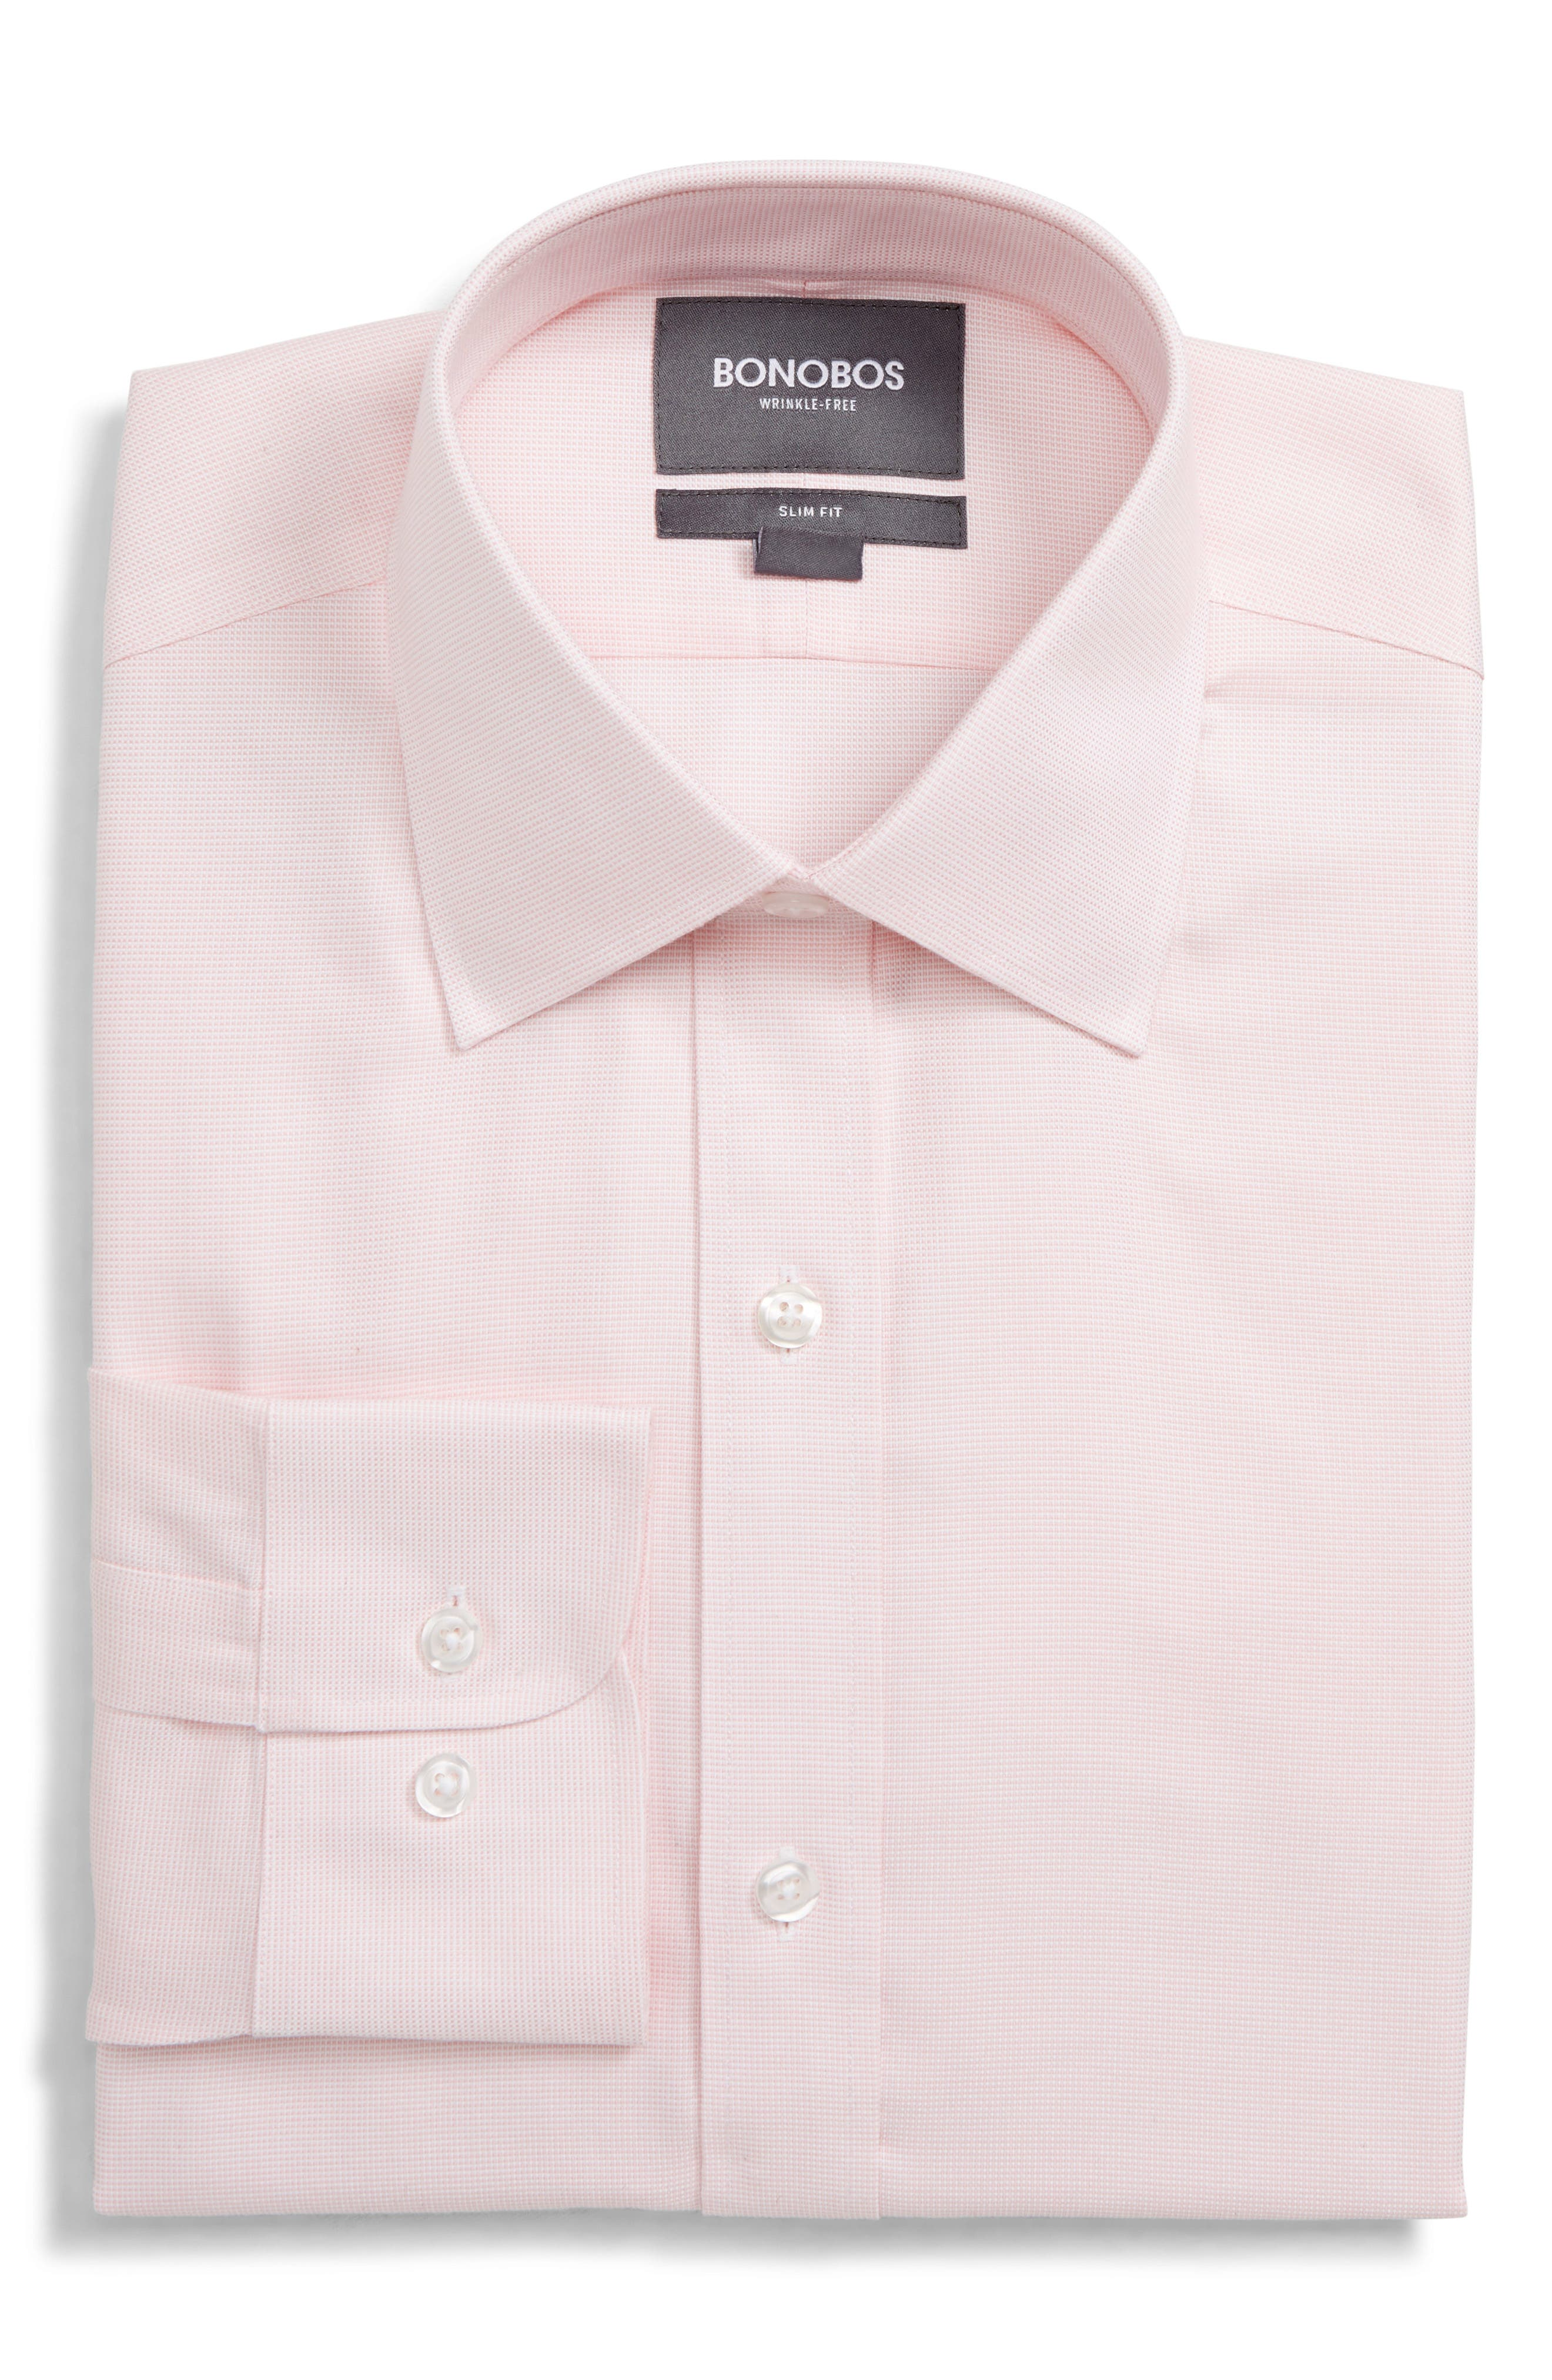 Bonobos Daily Grind Slim Fit Solid Dress Shirt, Pink